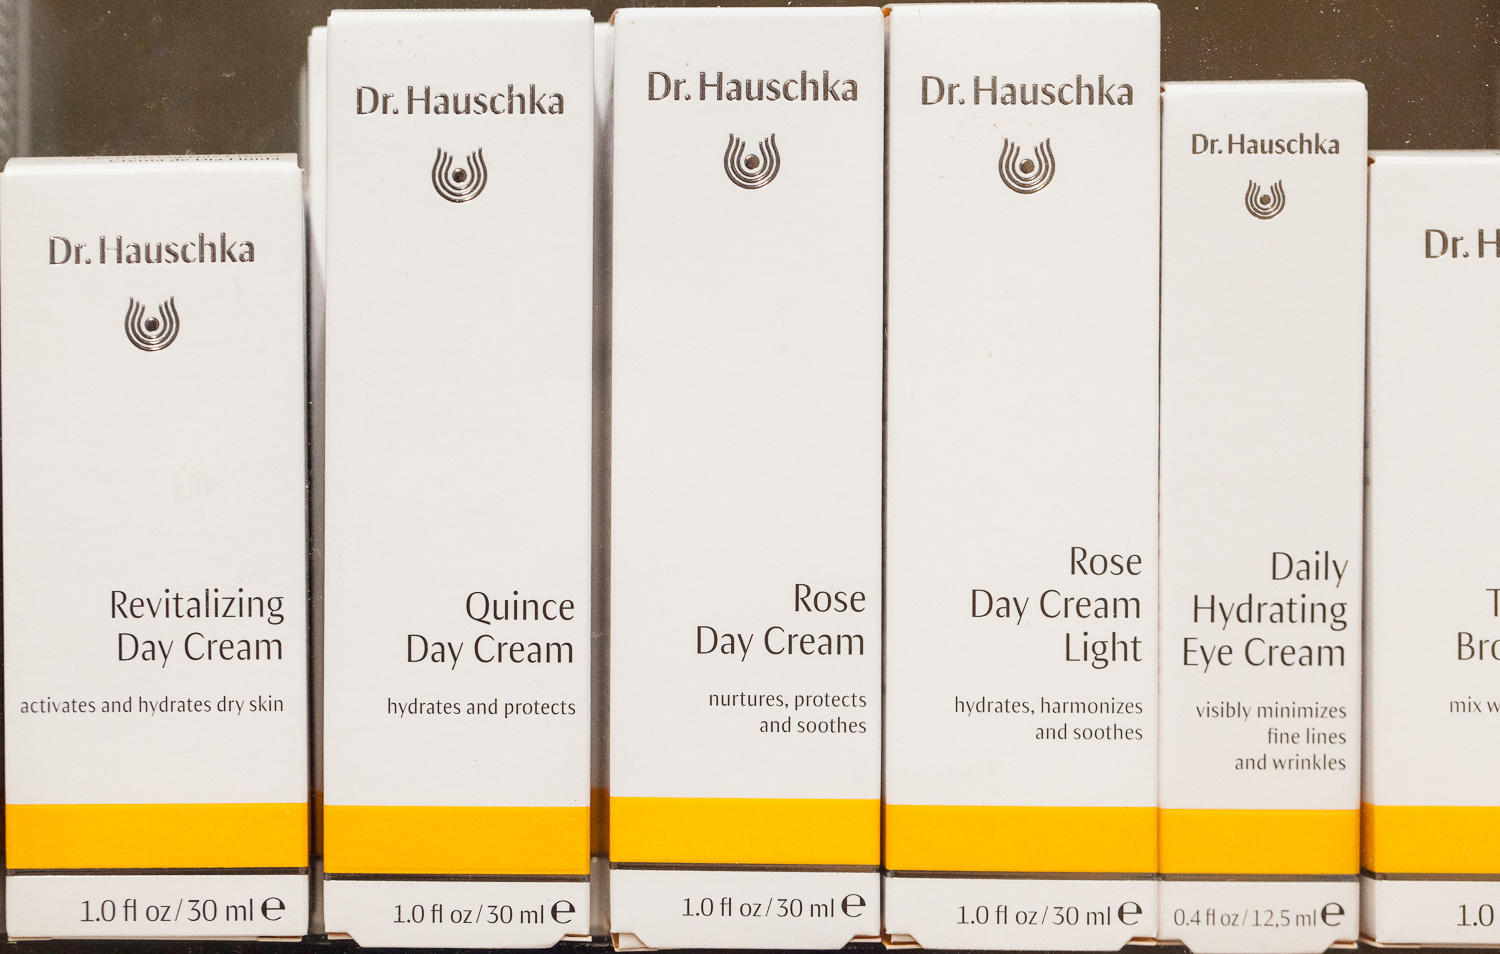 dr-hauschka-products-mana-foods-beauty-department.jpg